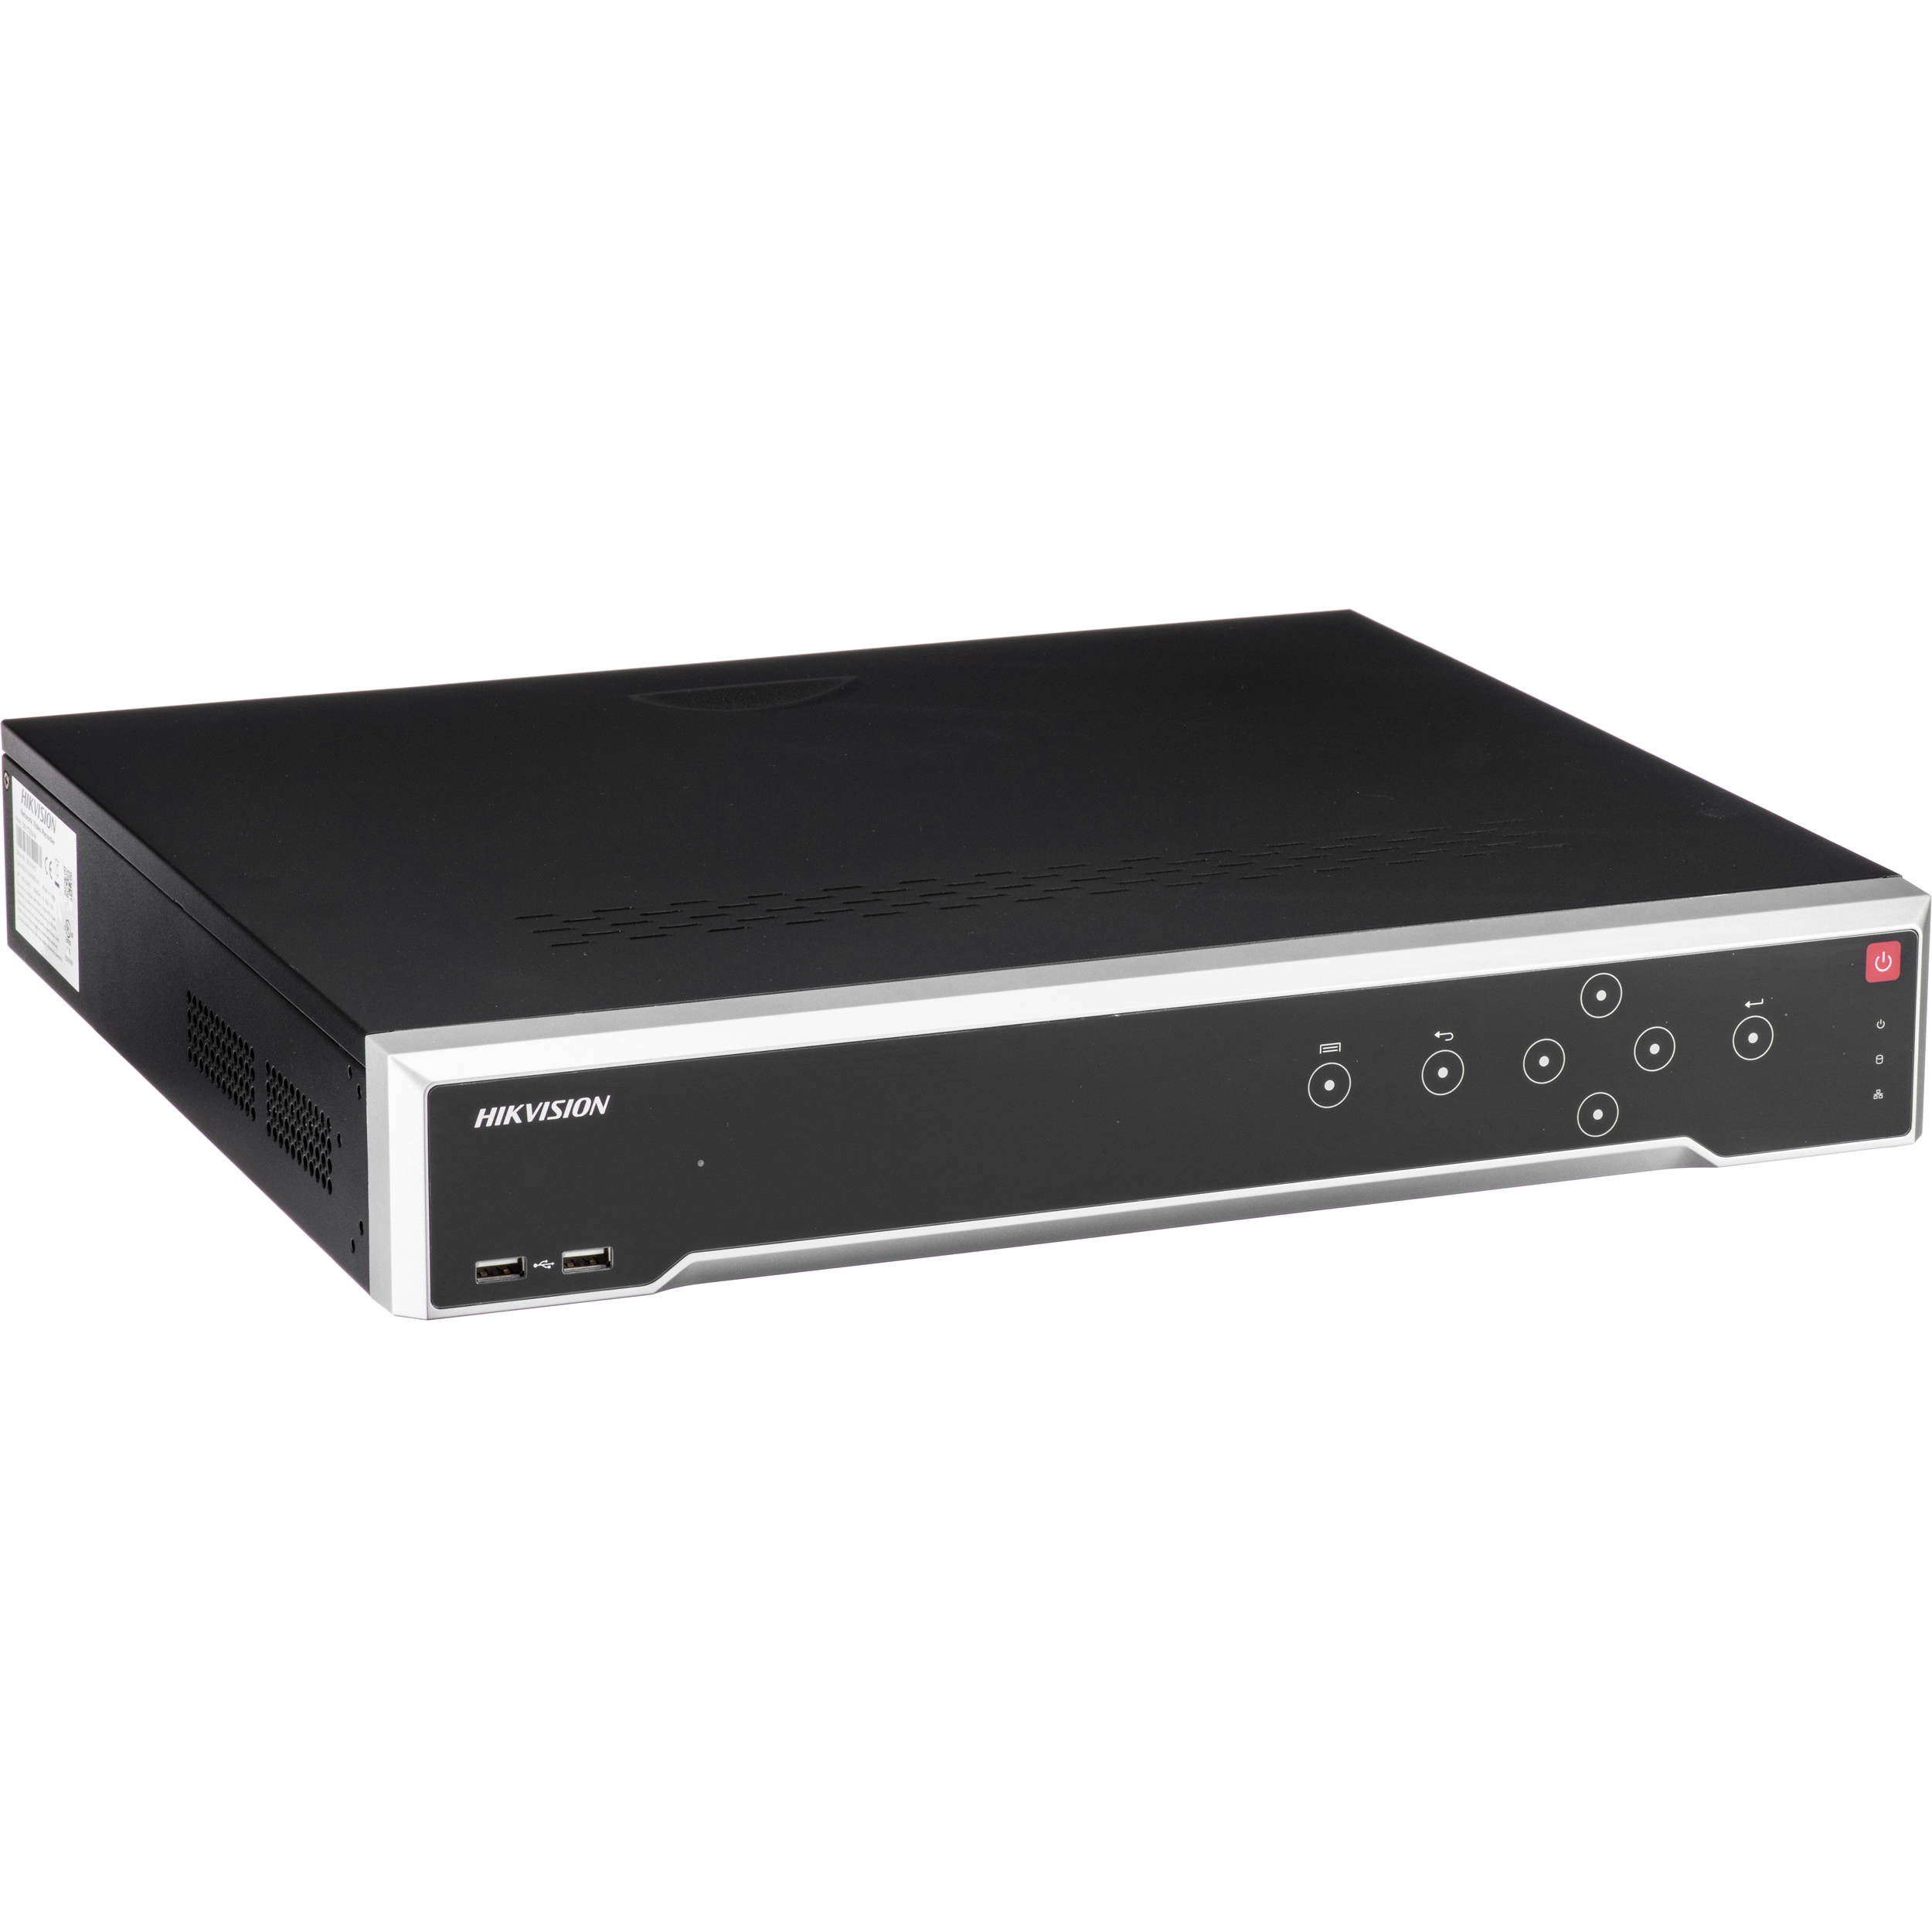 Hikvision DS-7732NI-I4 32-Channel 12MP NVR DS-7732NI-I4-4TB B&H